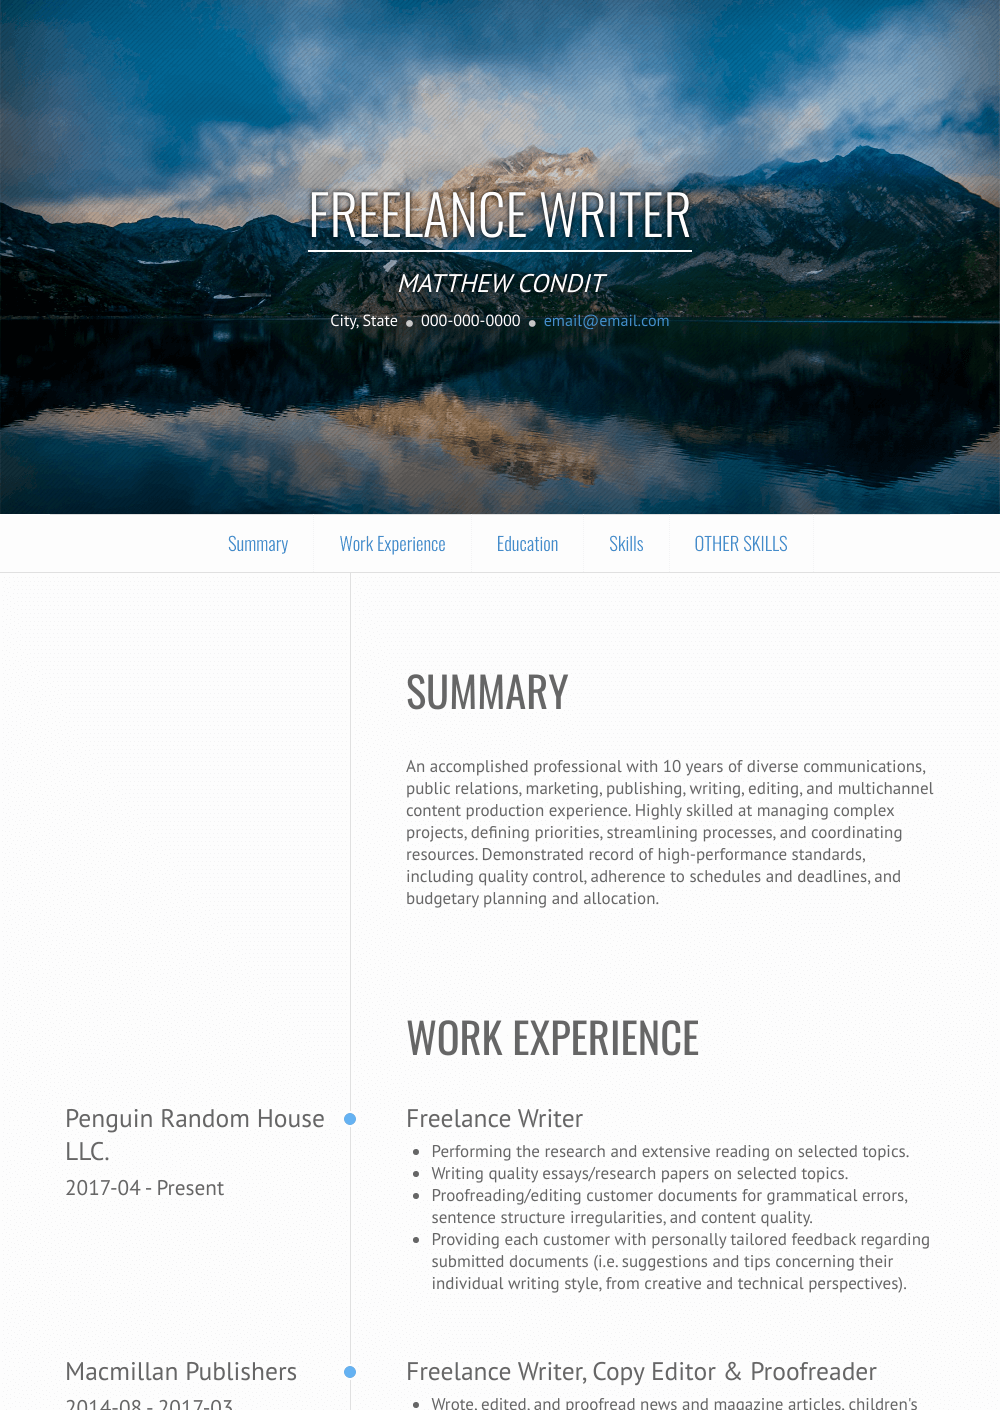 Freelance Writer Resume Sample and Template